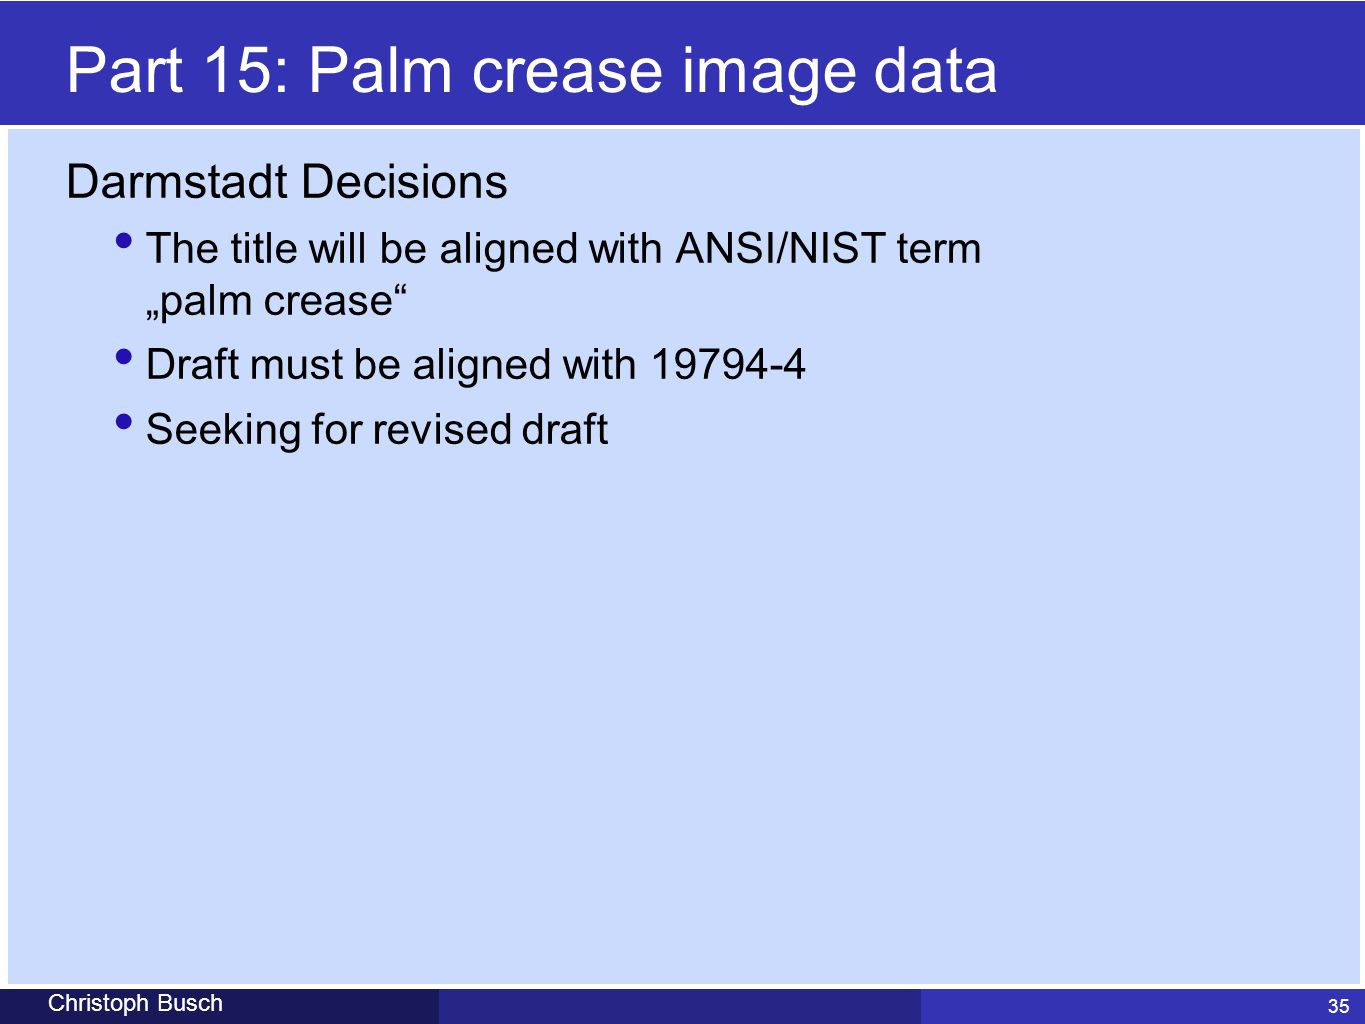 Part 15: Palm crease image data